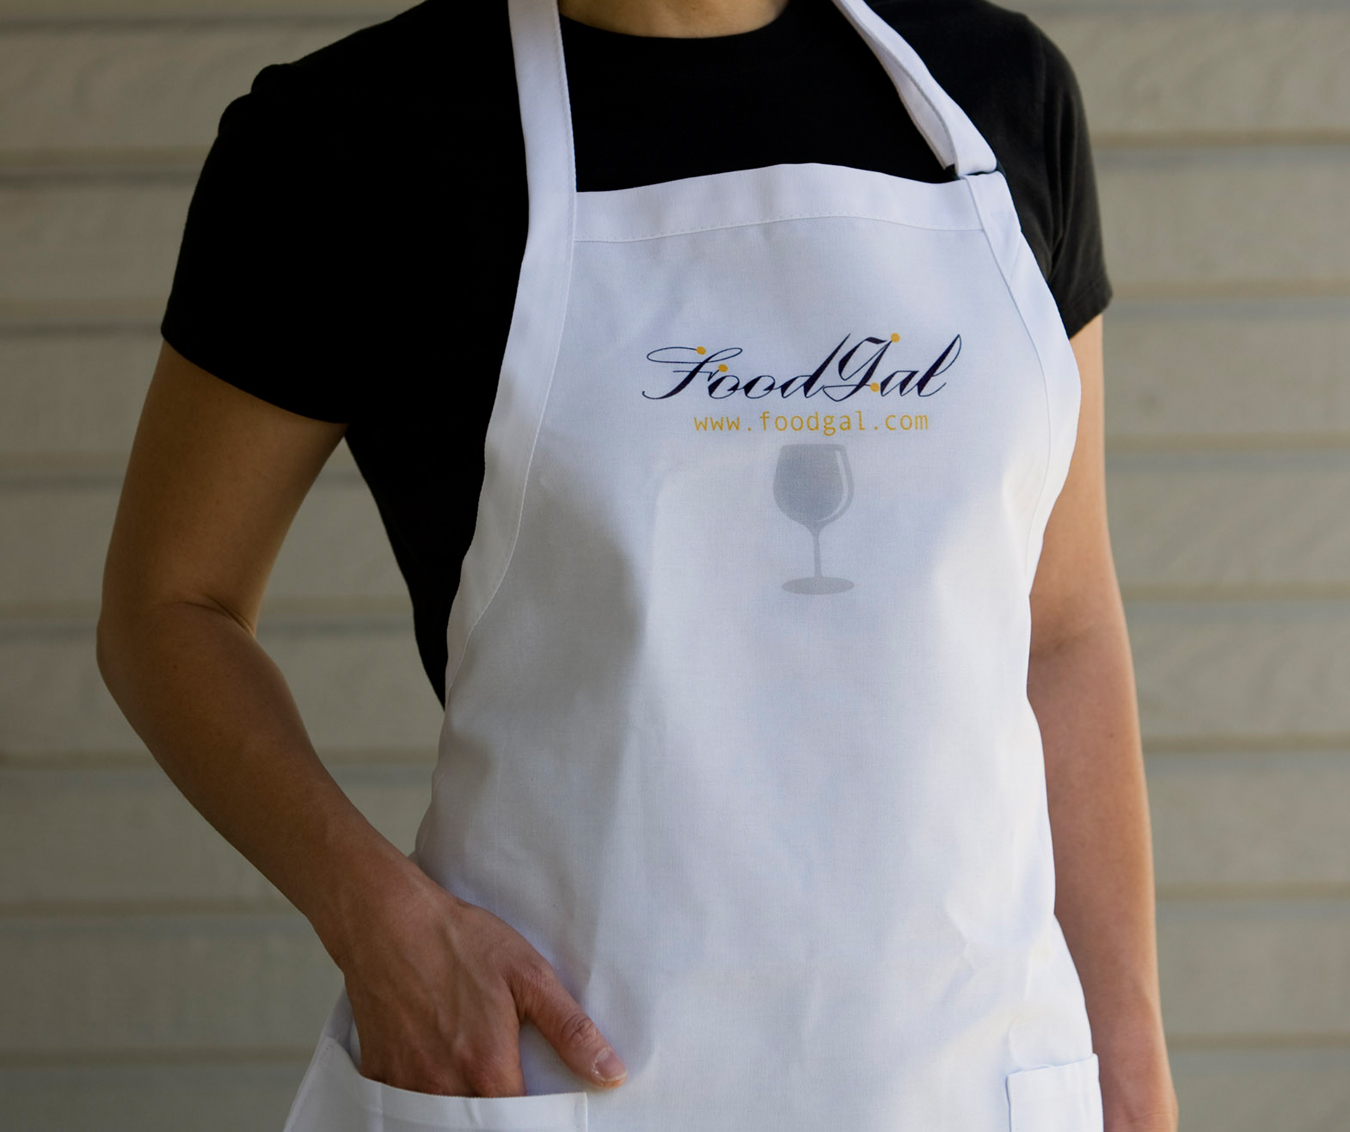 White girly apron - Don T Forget There S Also A Wide Range Of Other Food Gal Items Including Aprons Tote Bags And Girly T S